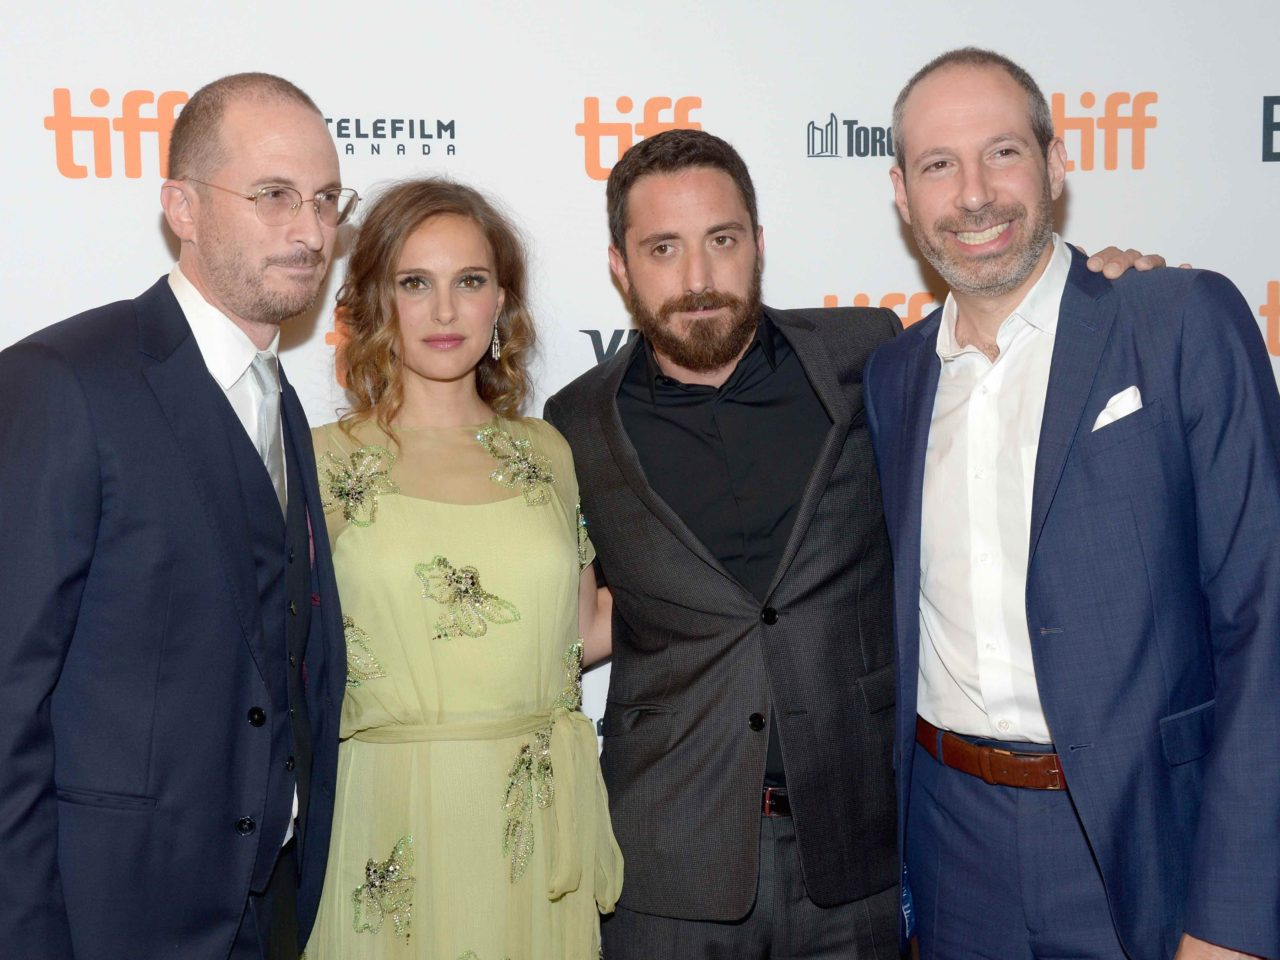 Natalie Portman (second from left) and Noah Oppenheim (far right)